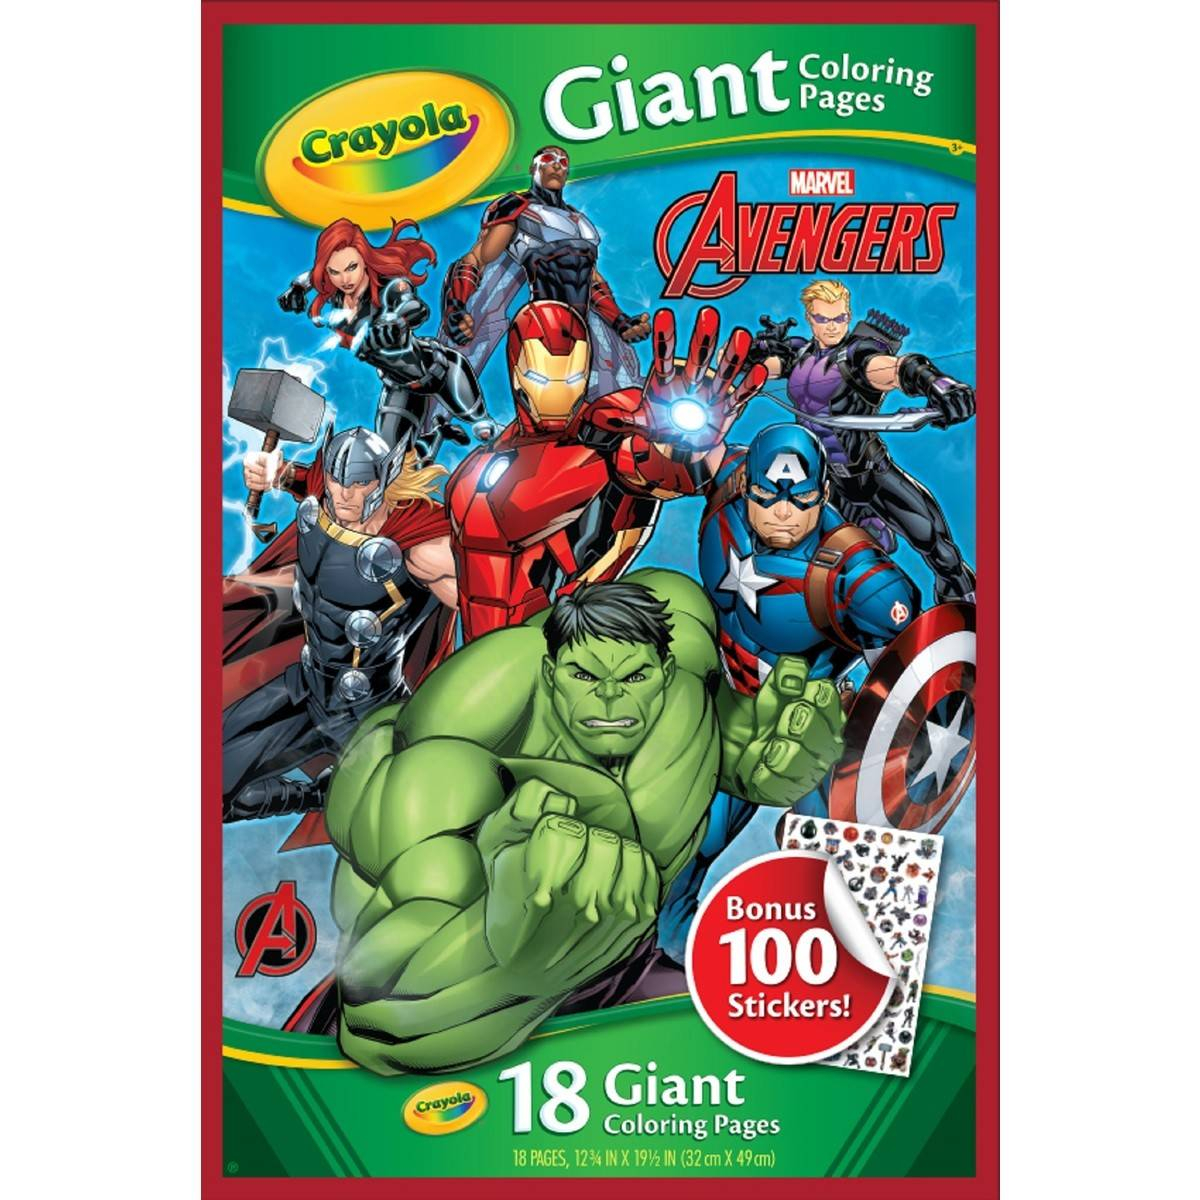 Crayola Giant Coloring Pages Crayola Giant Colouring Pages Avengers With Bonus Stickers Big W